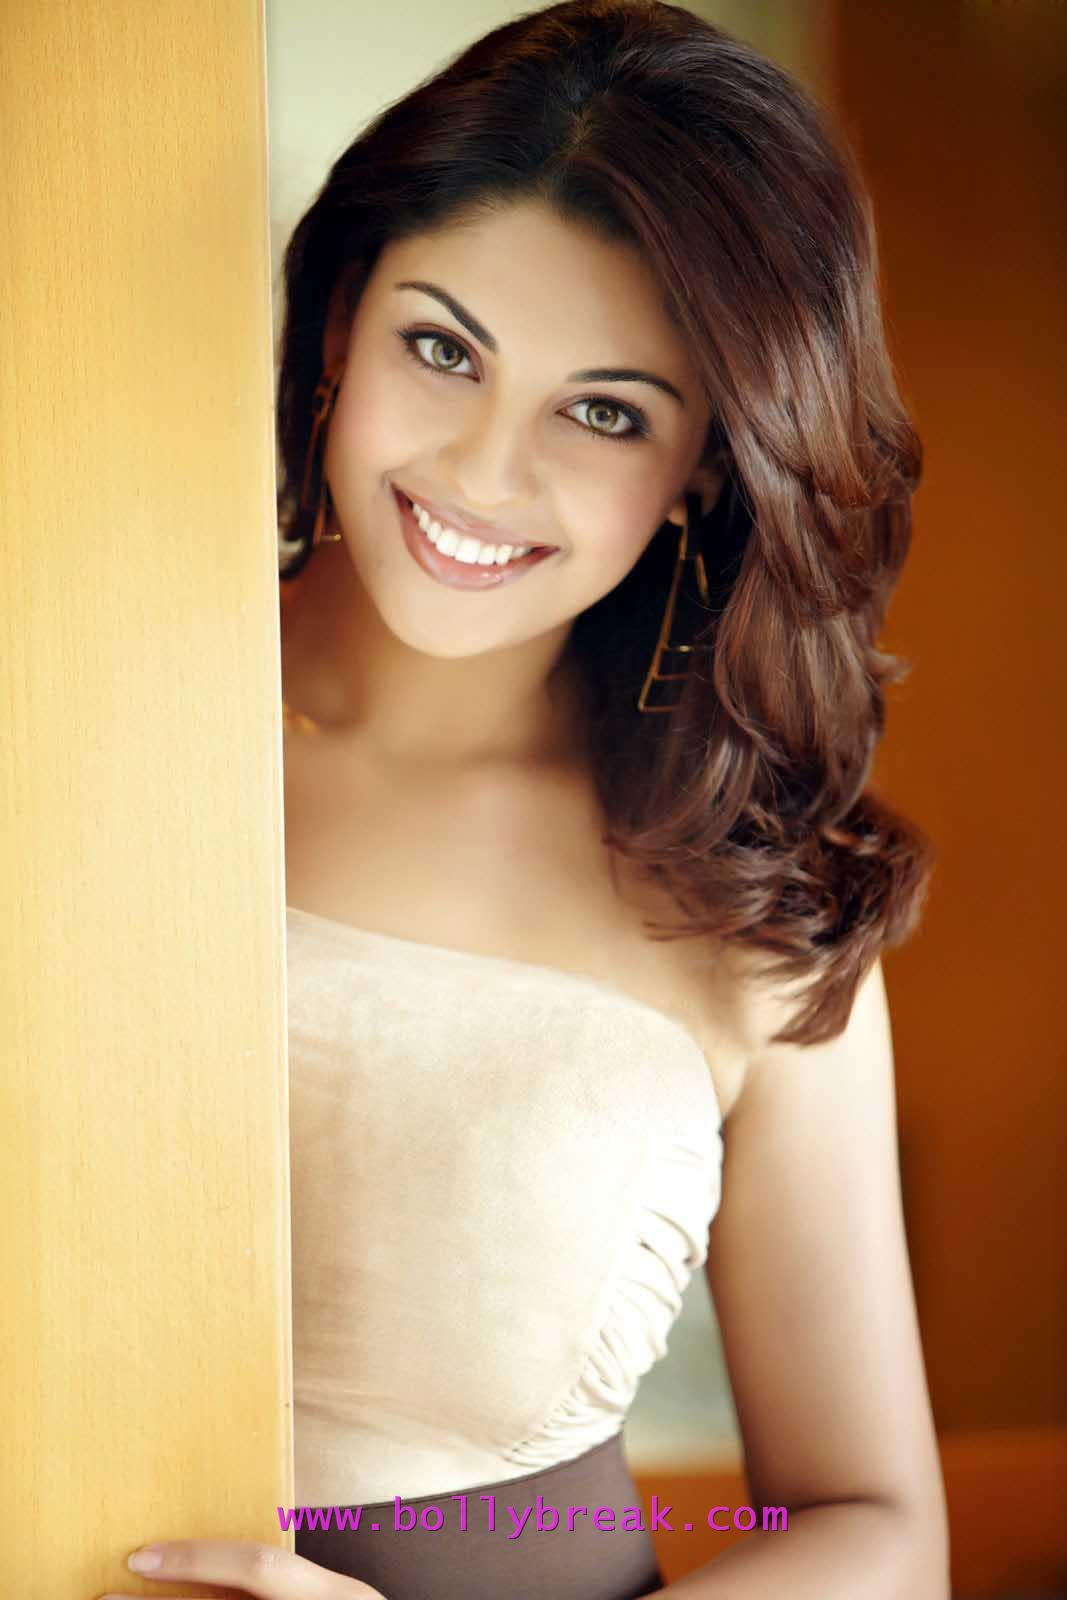 Richa Gangopadhyay cute smile -  Richa Gangopadhyay Latest Photo Gallery - April 2012